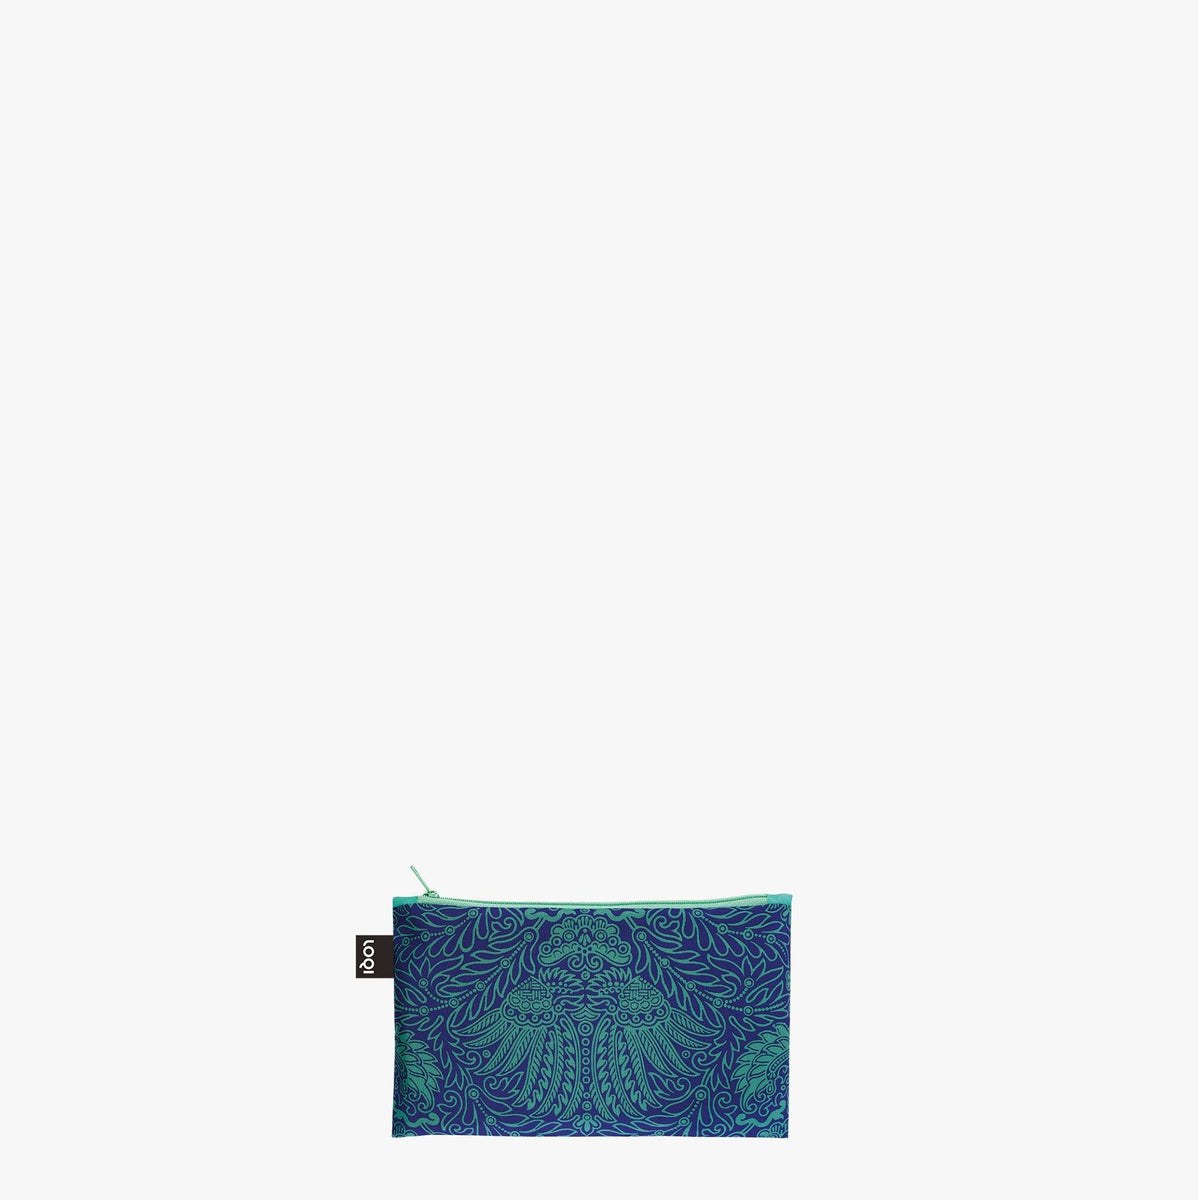 LOQI Museum of Decorative Arts, Paris Japanese, Arabesque, Landscape Zip Pockets mini